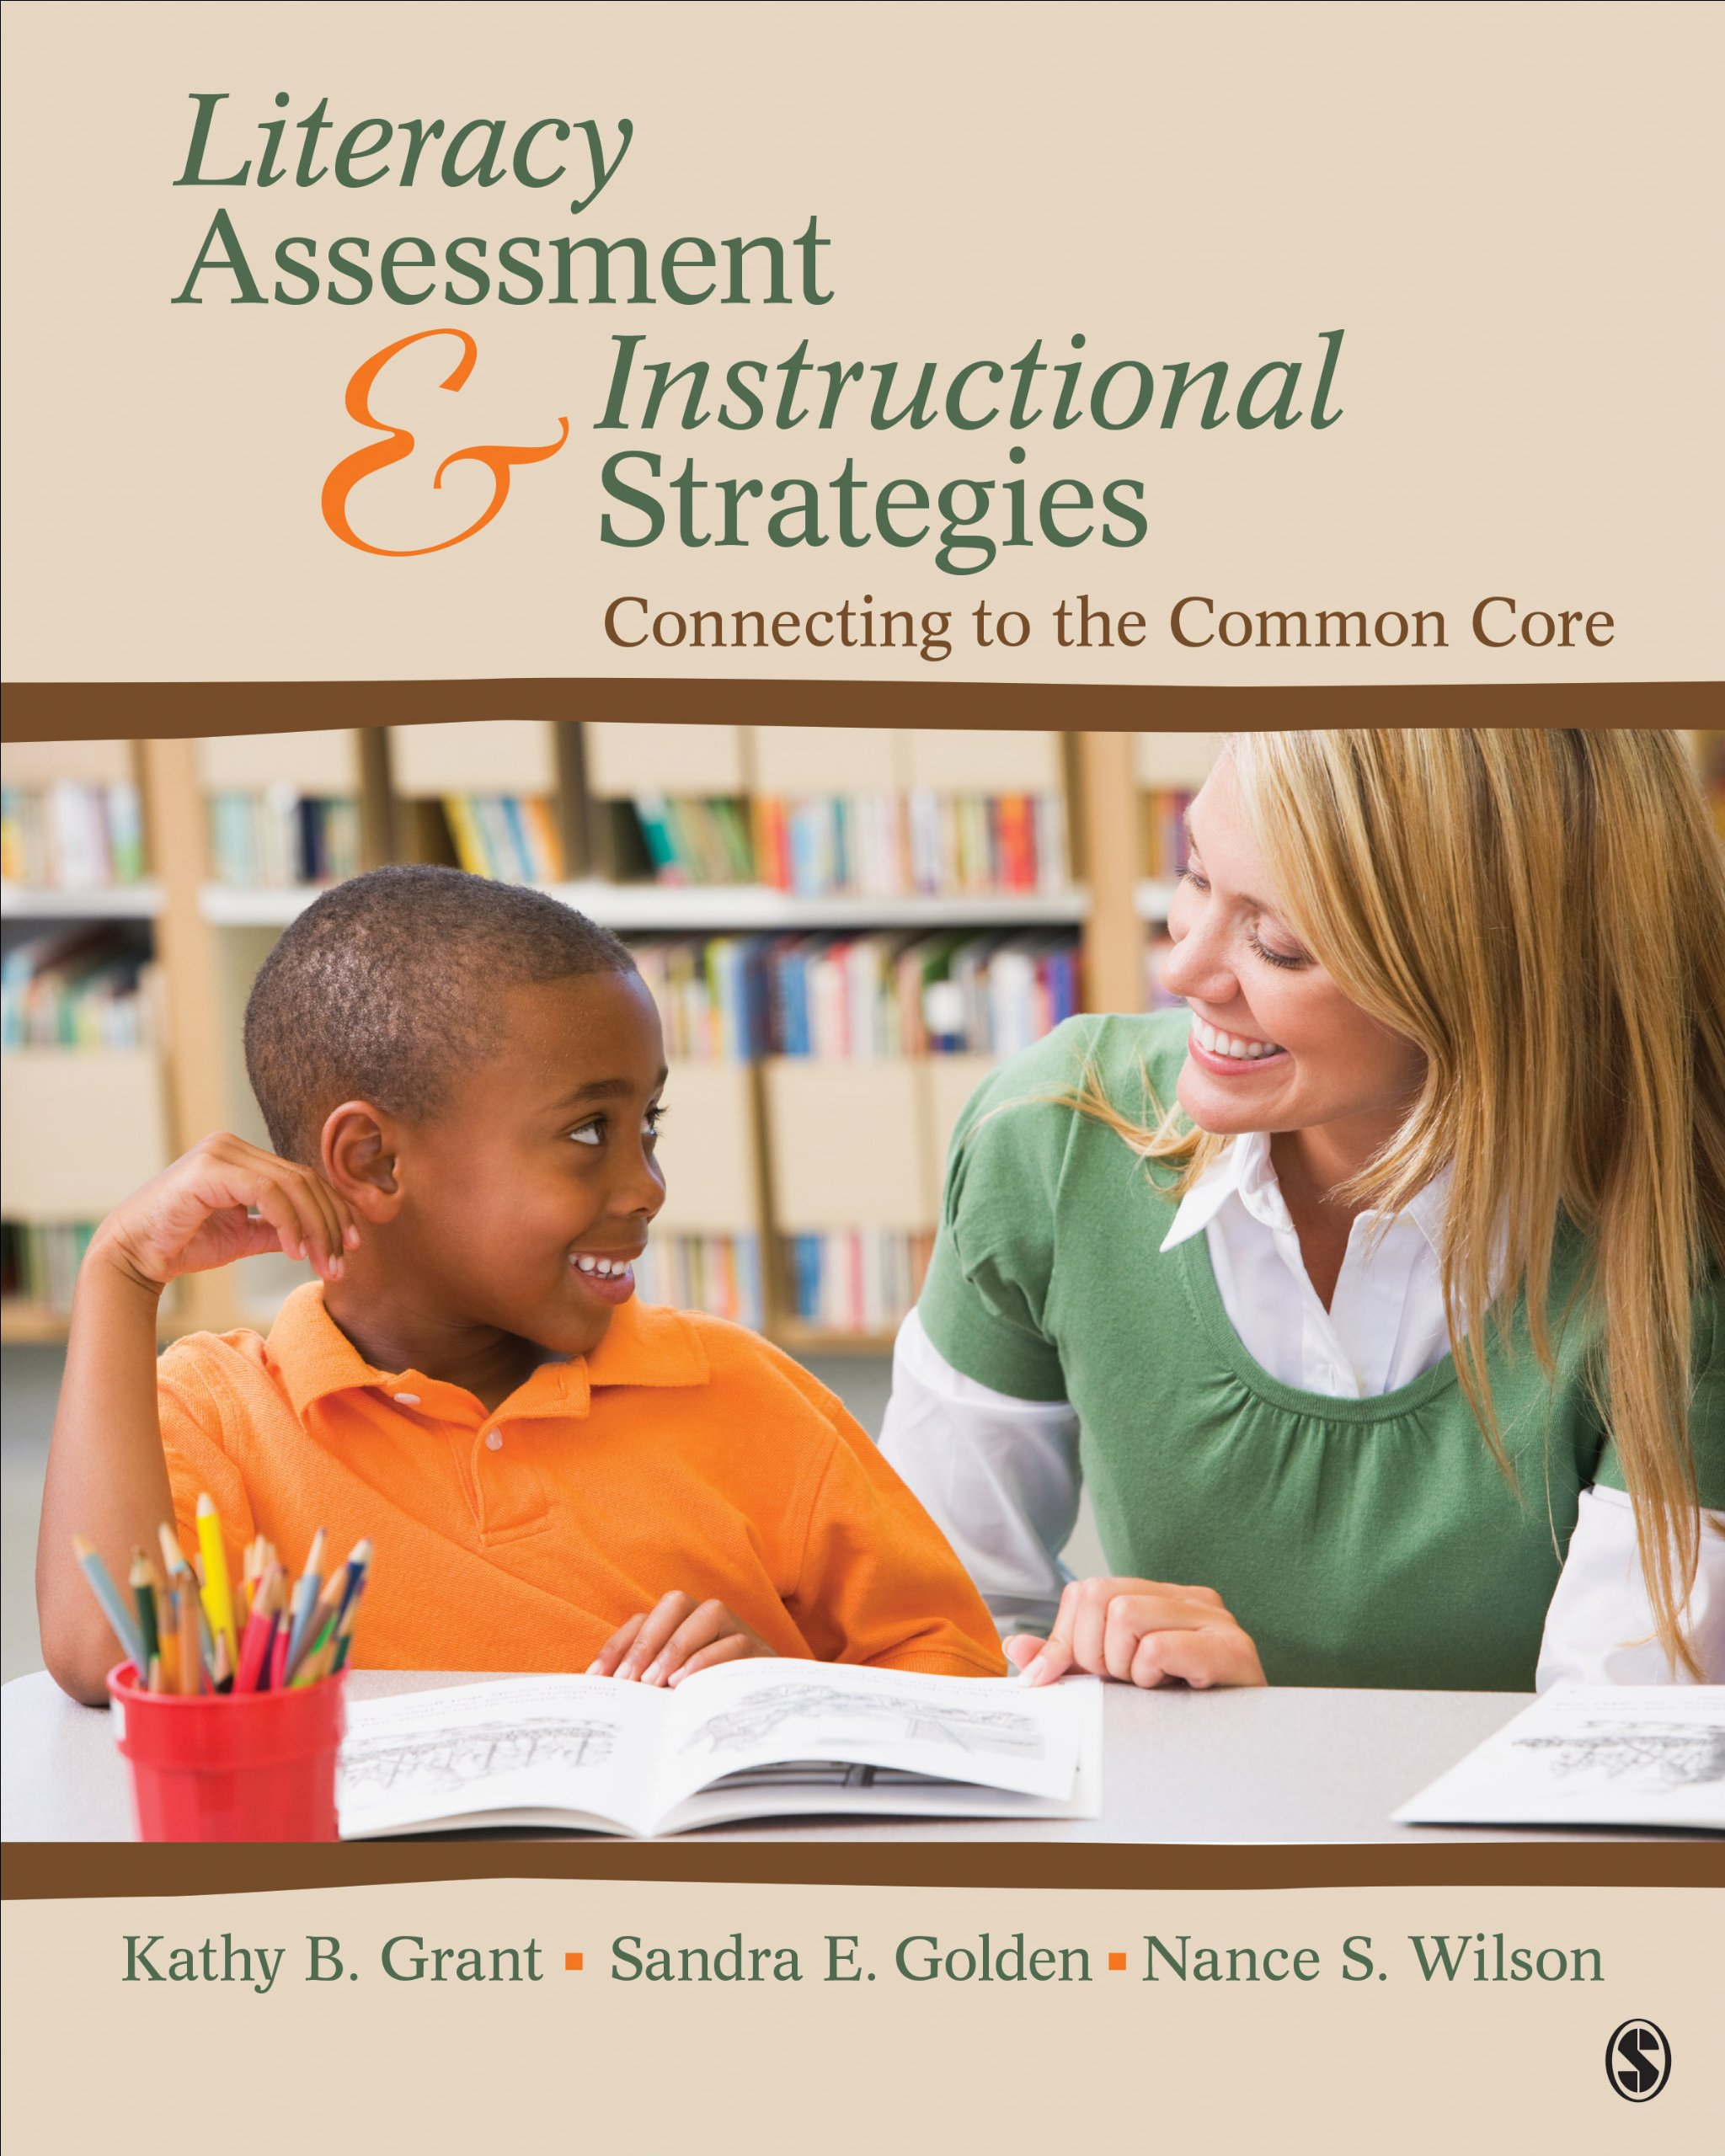 Literacy Assessment and Instructional Strategies: Connecting to the Common Core